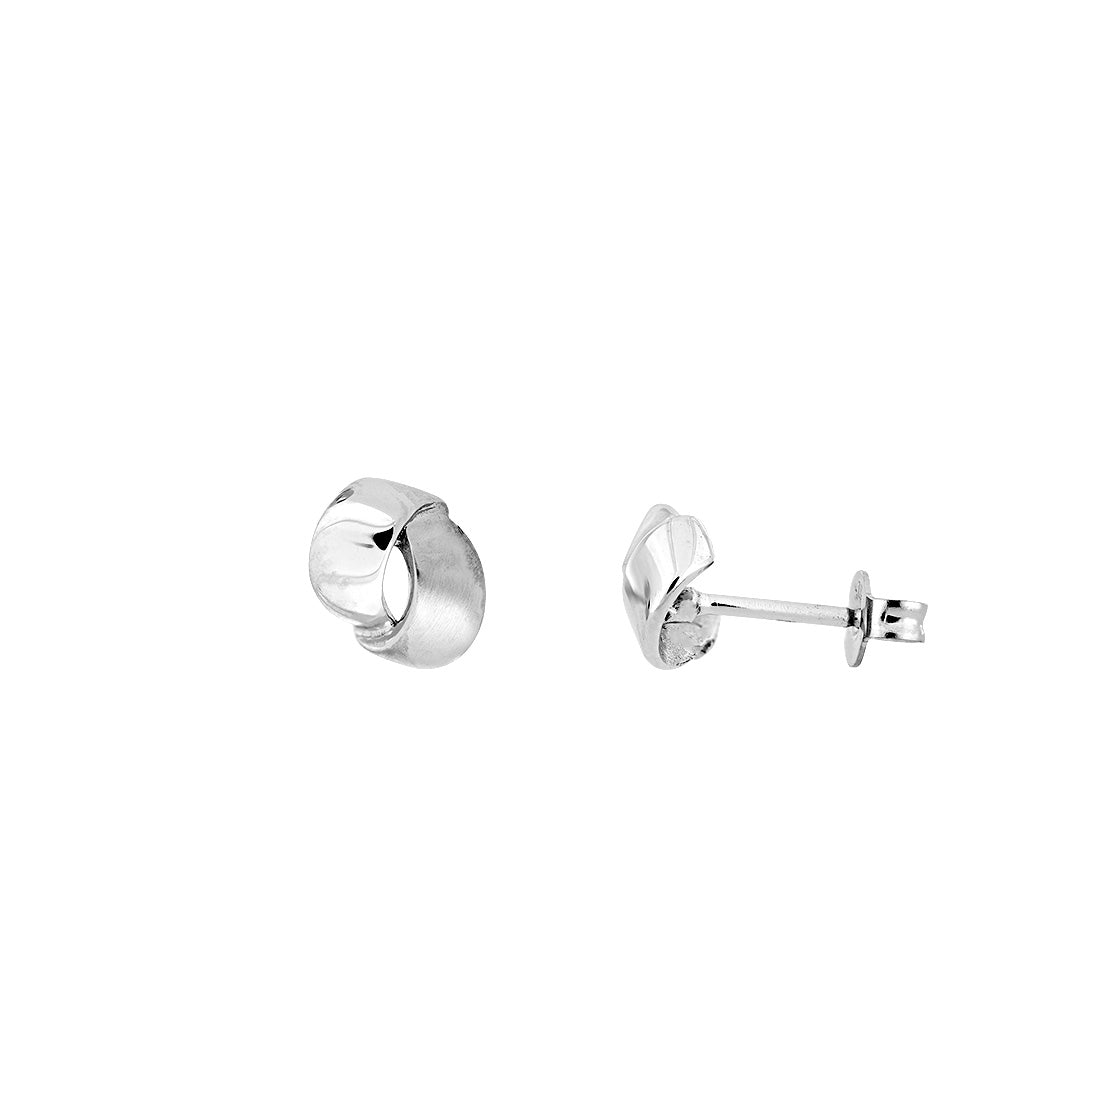 White Gold Satin & Polished Curves Studs